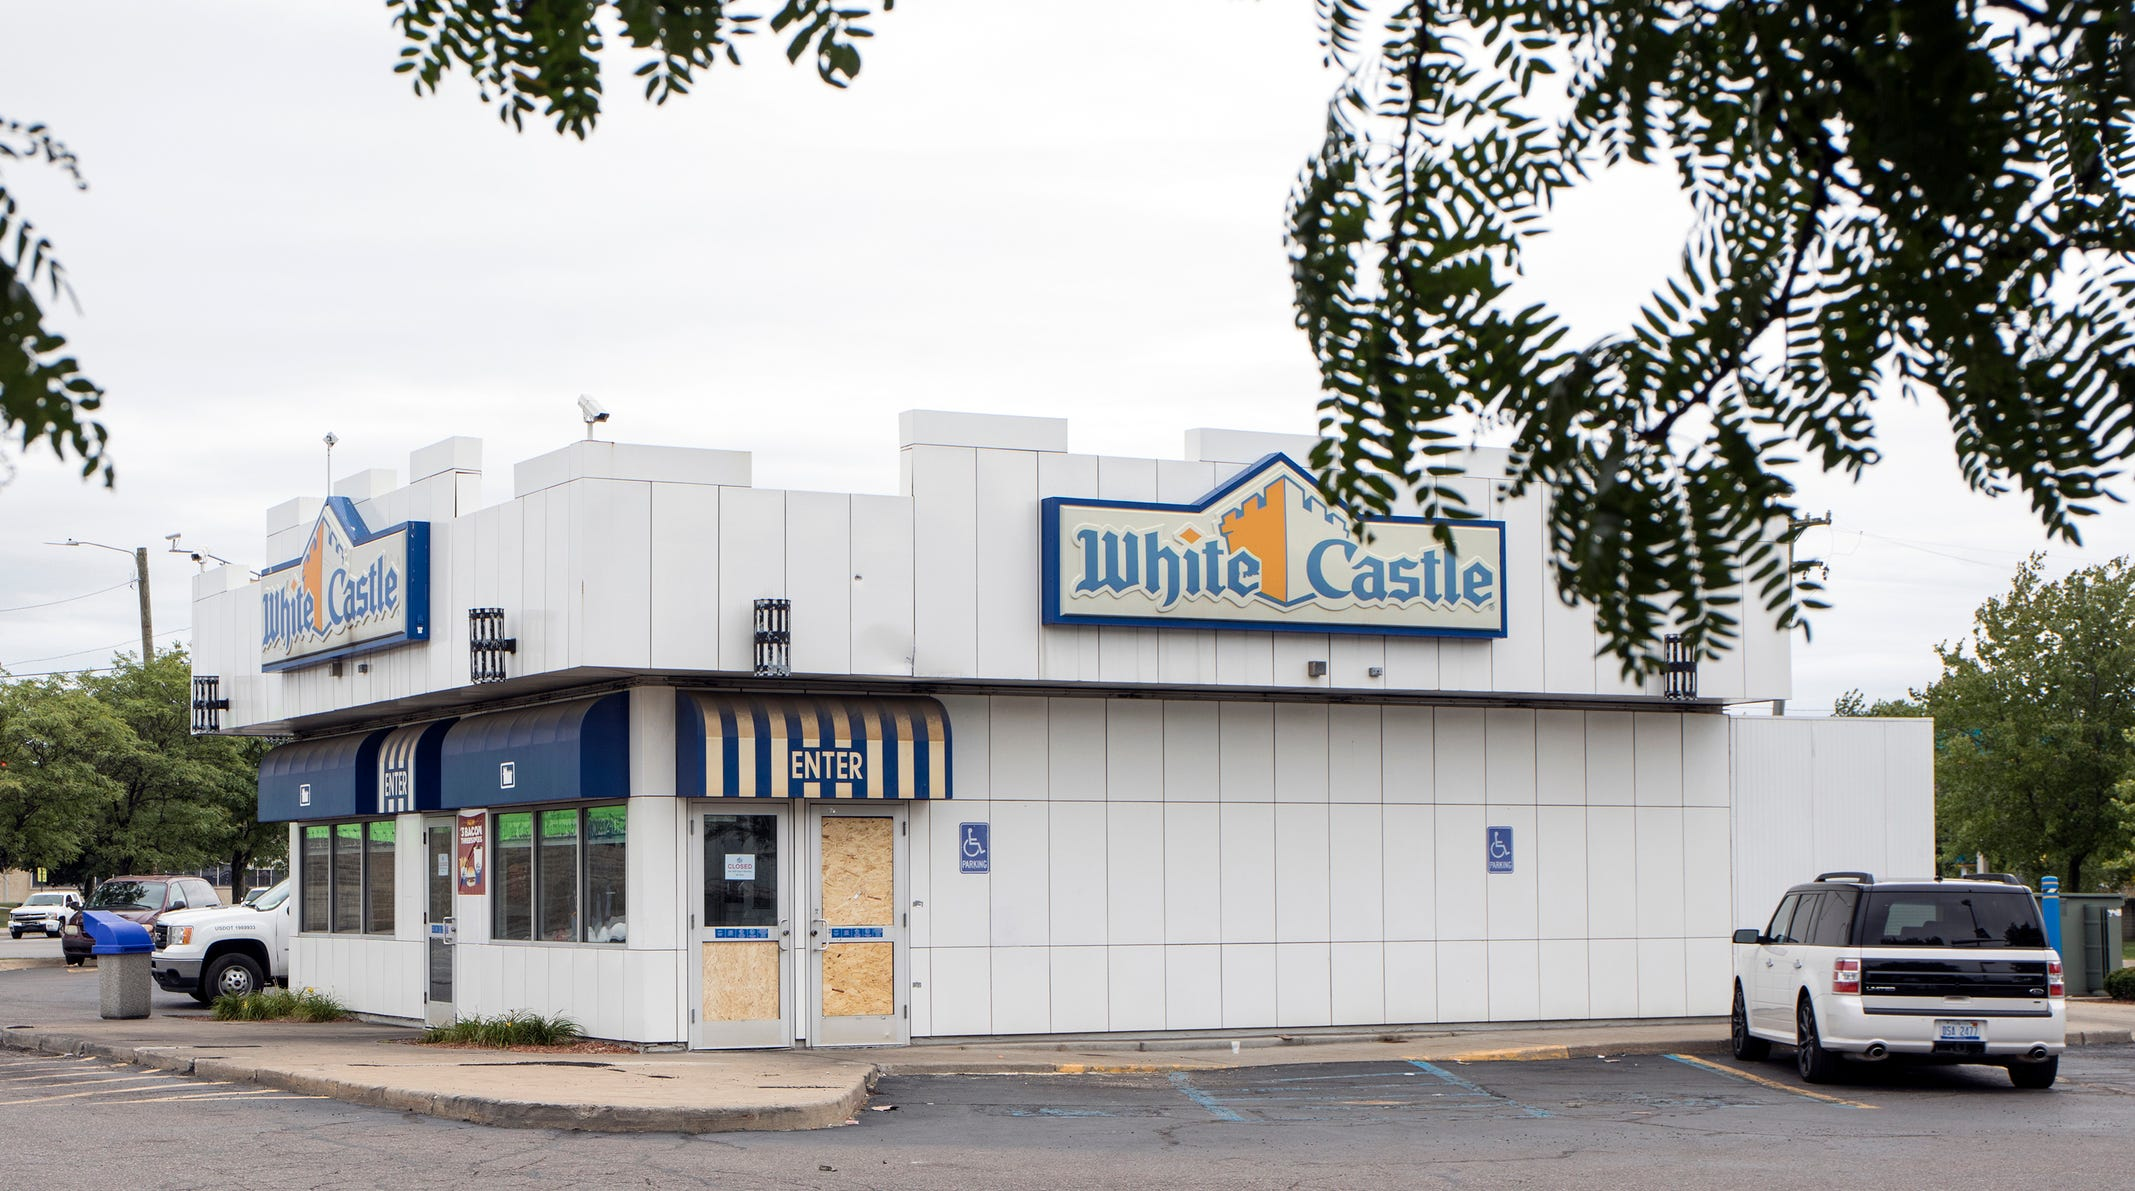 3 people shot, killed at White Castle in Detroit